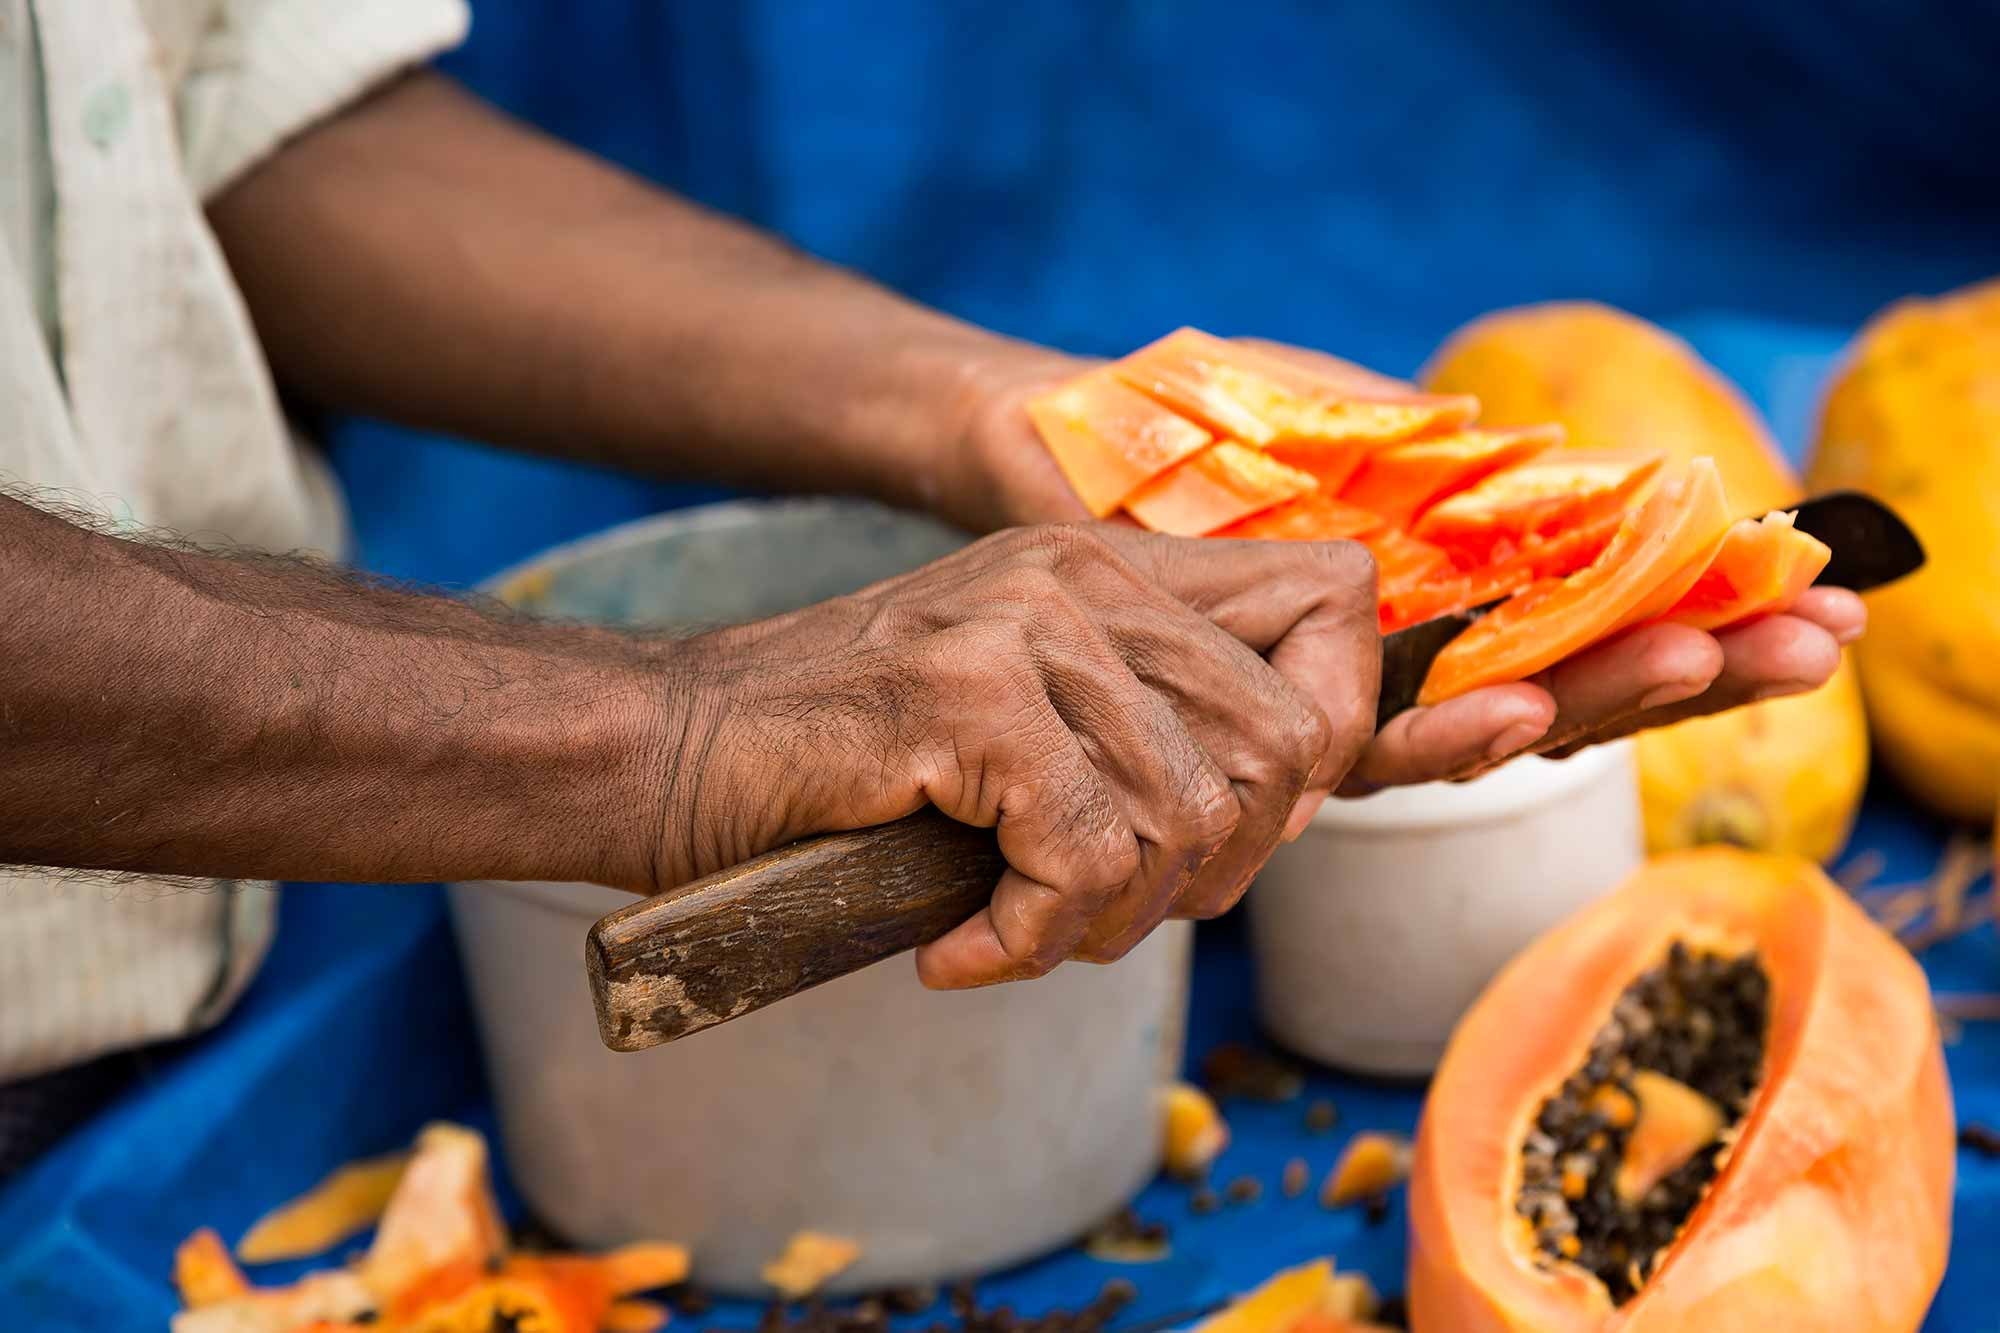 Man cutting papaya in the streets of Varanasi, India. © Ulli Maier & Nisa Maier